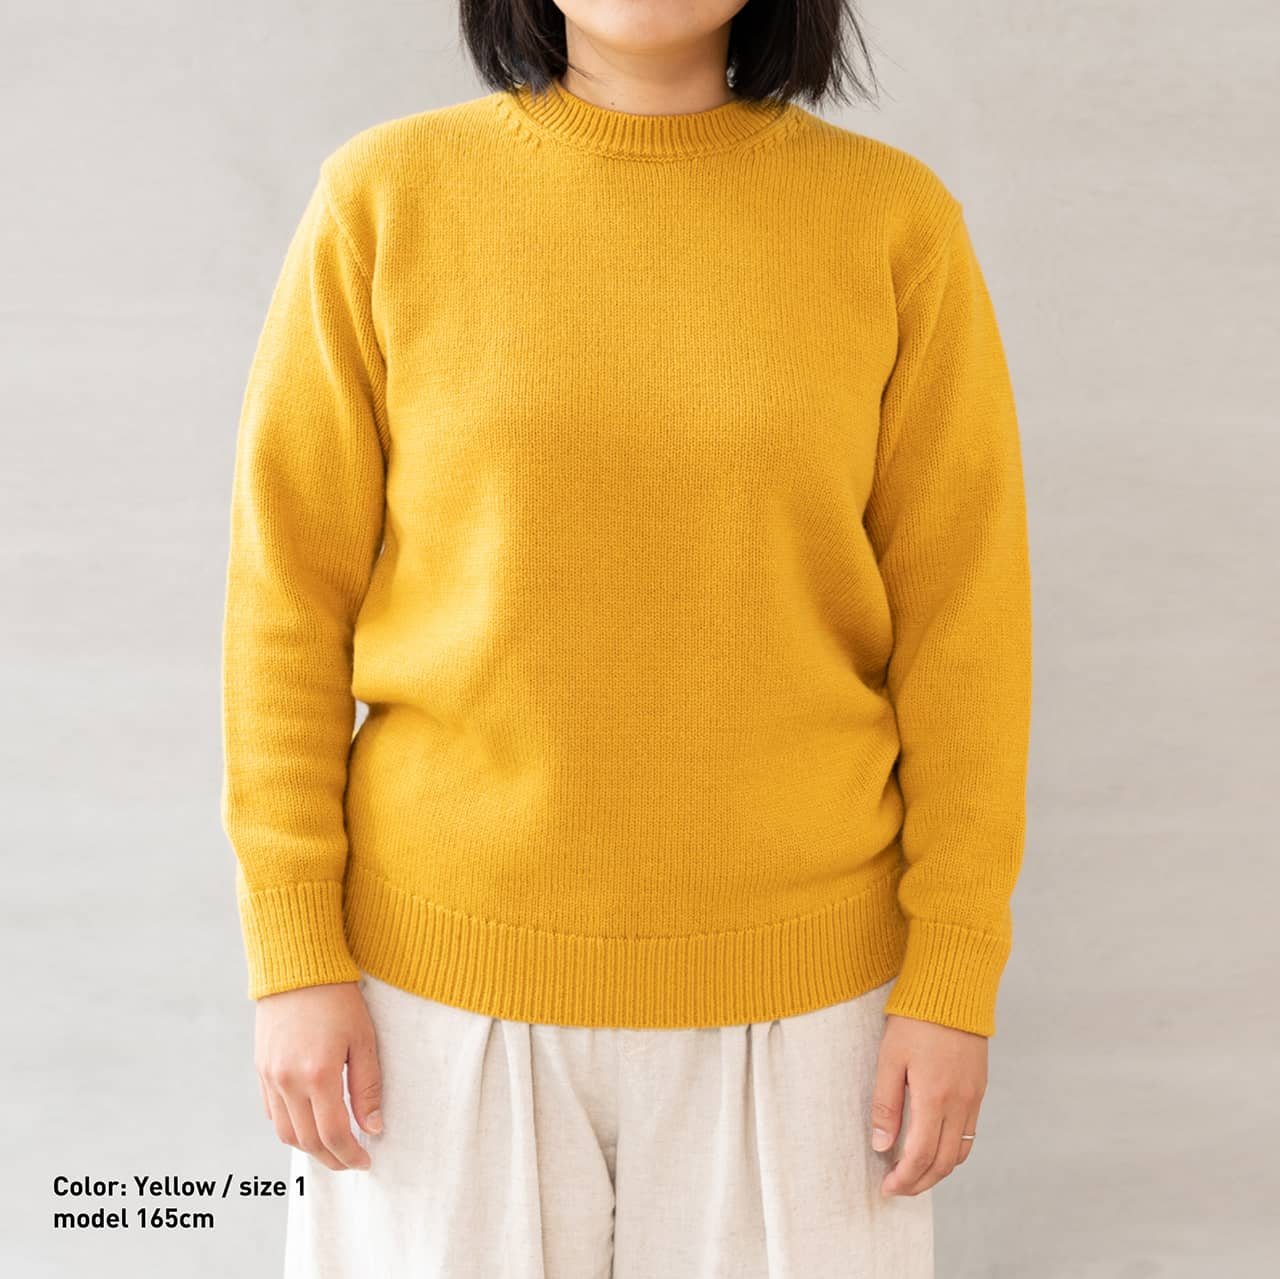 THIS IS A SWEATER.